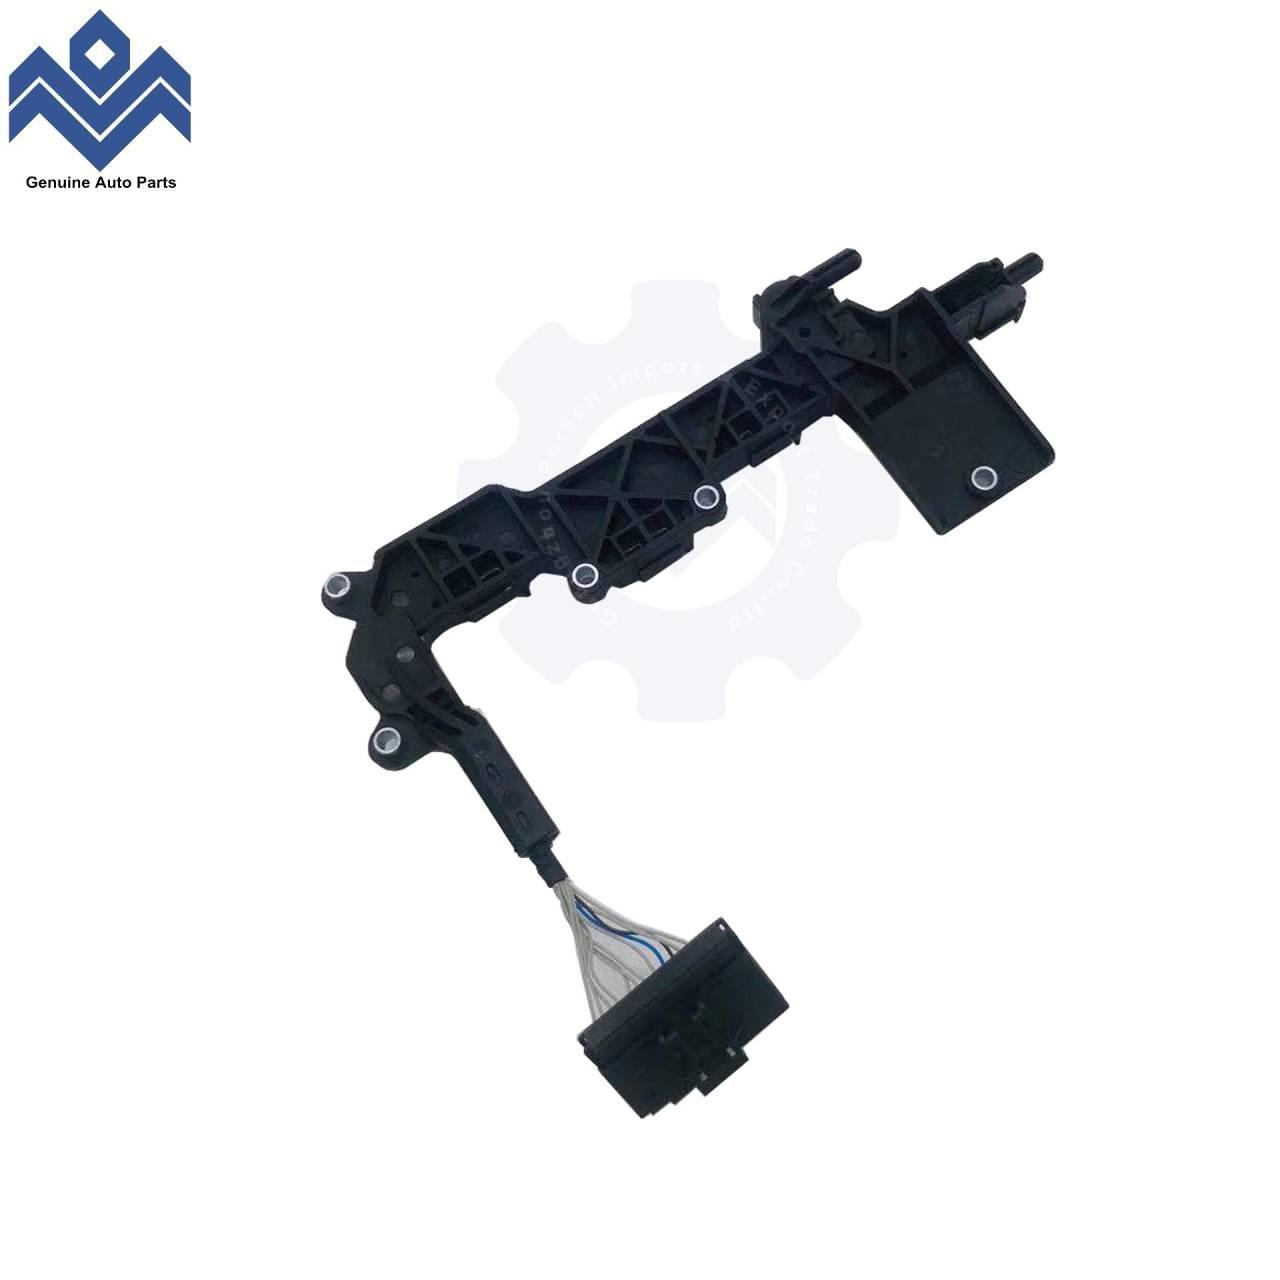 Quality For Audi VW DSG Automatic Gearbox Wirng Harness Repair Kit 0B5398009E 0B5 398 for sale